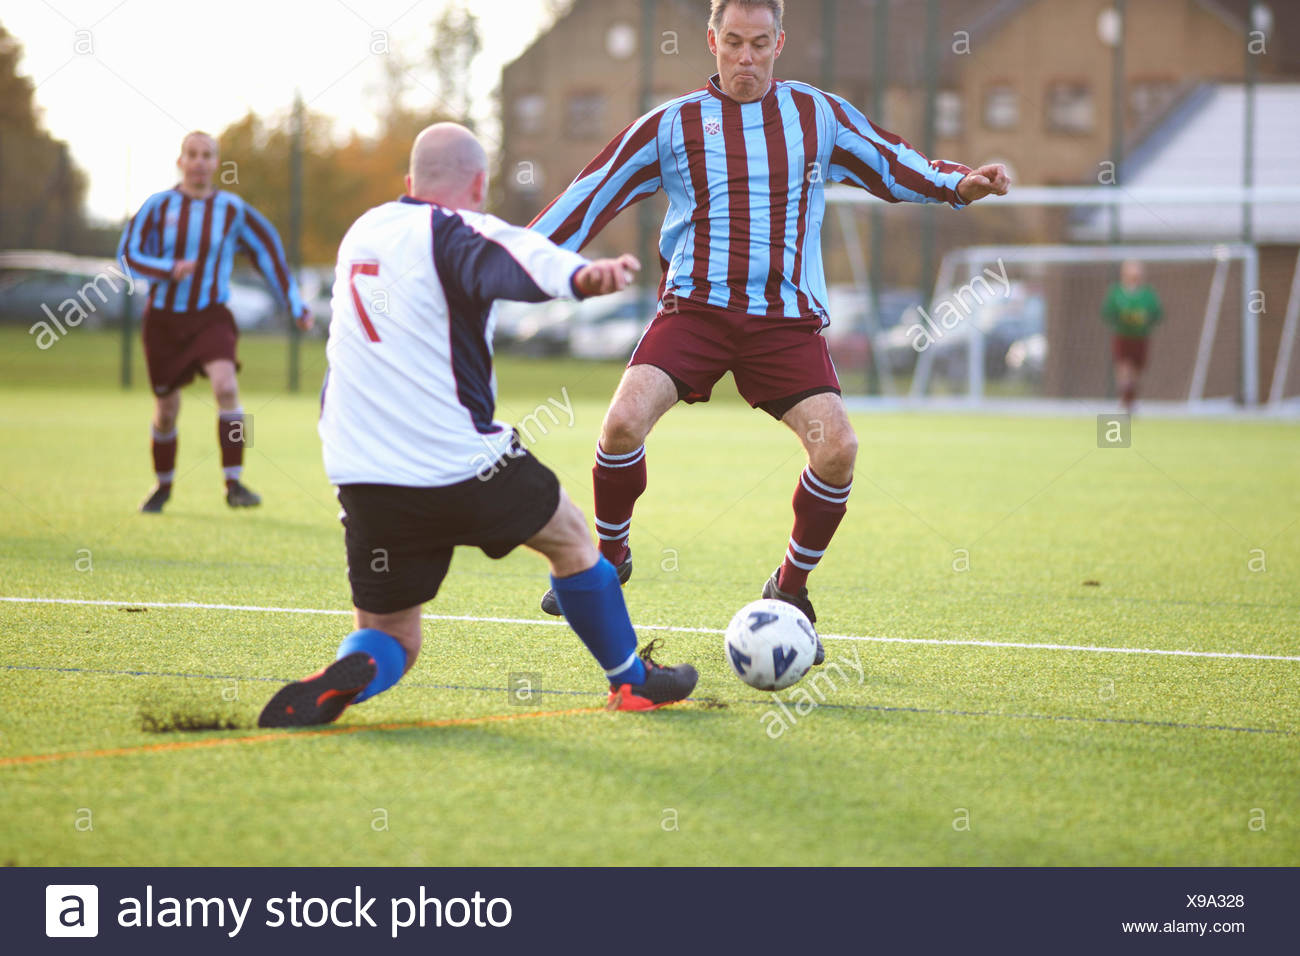 Football players fighting for ball - Stock Image